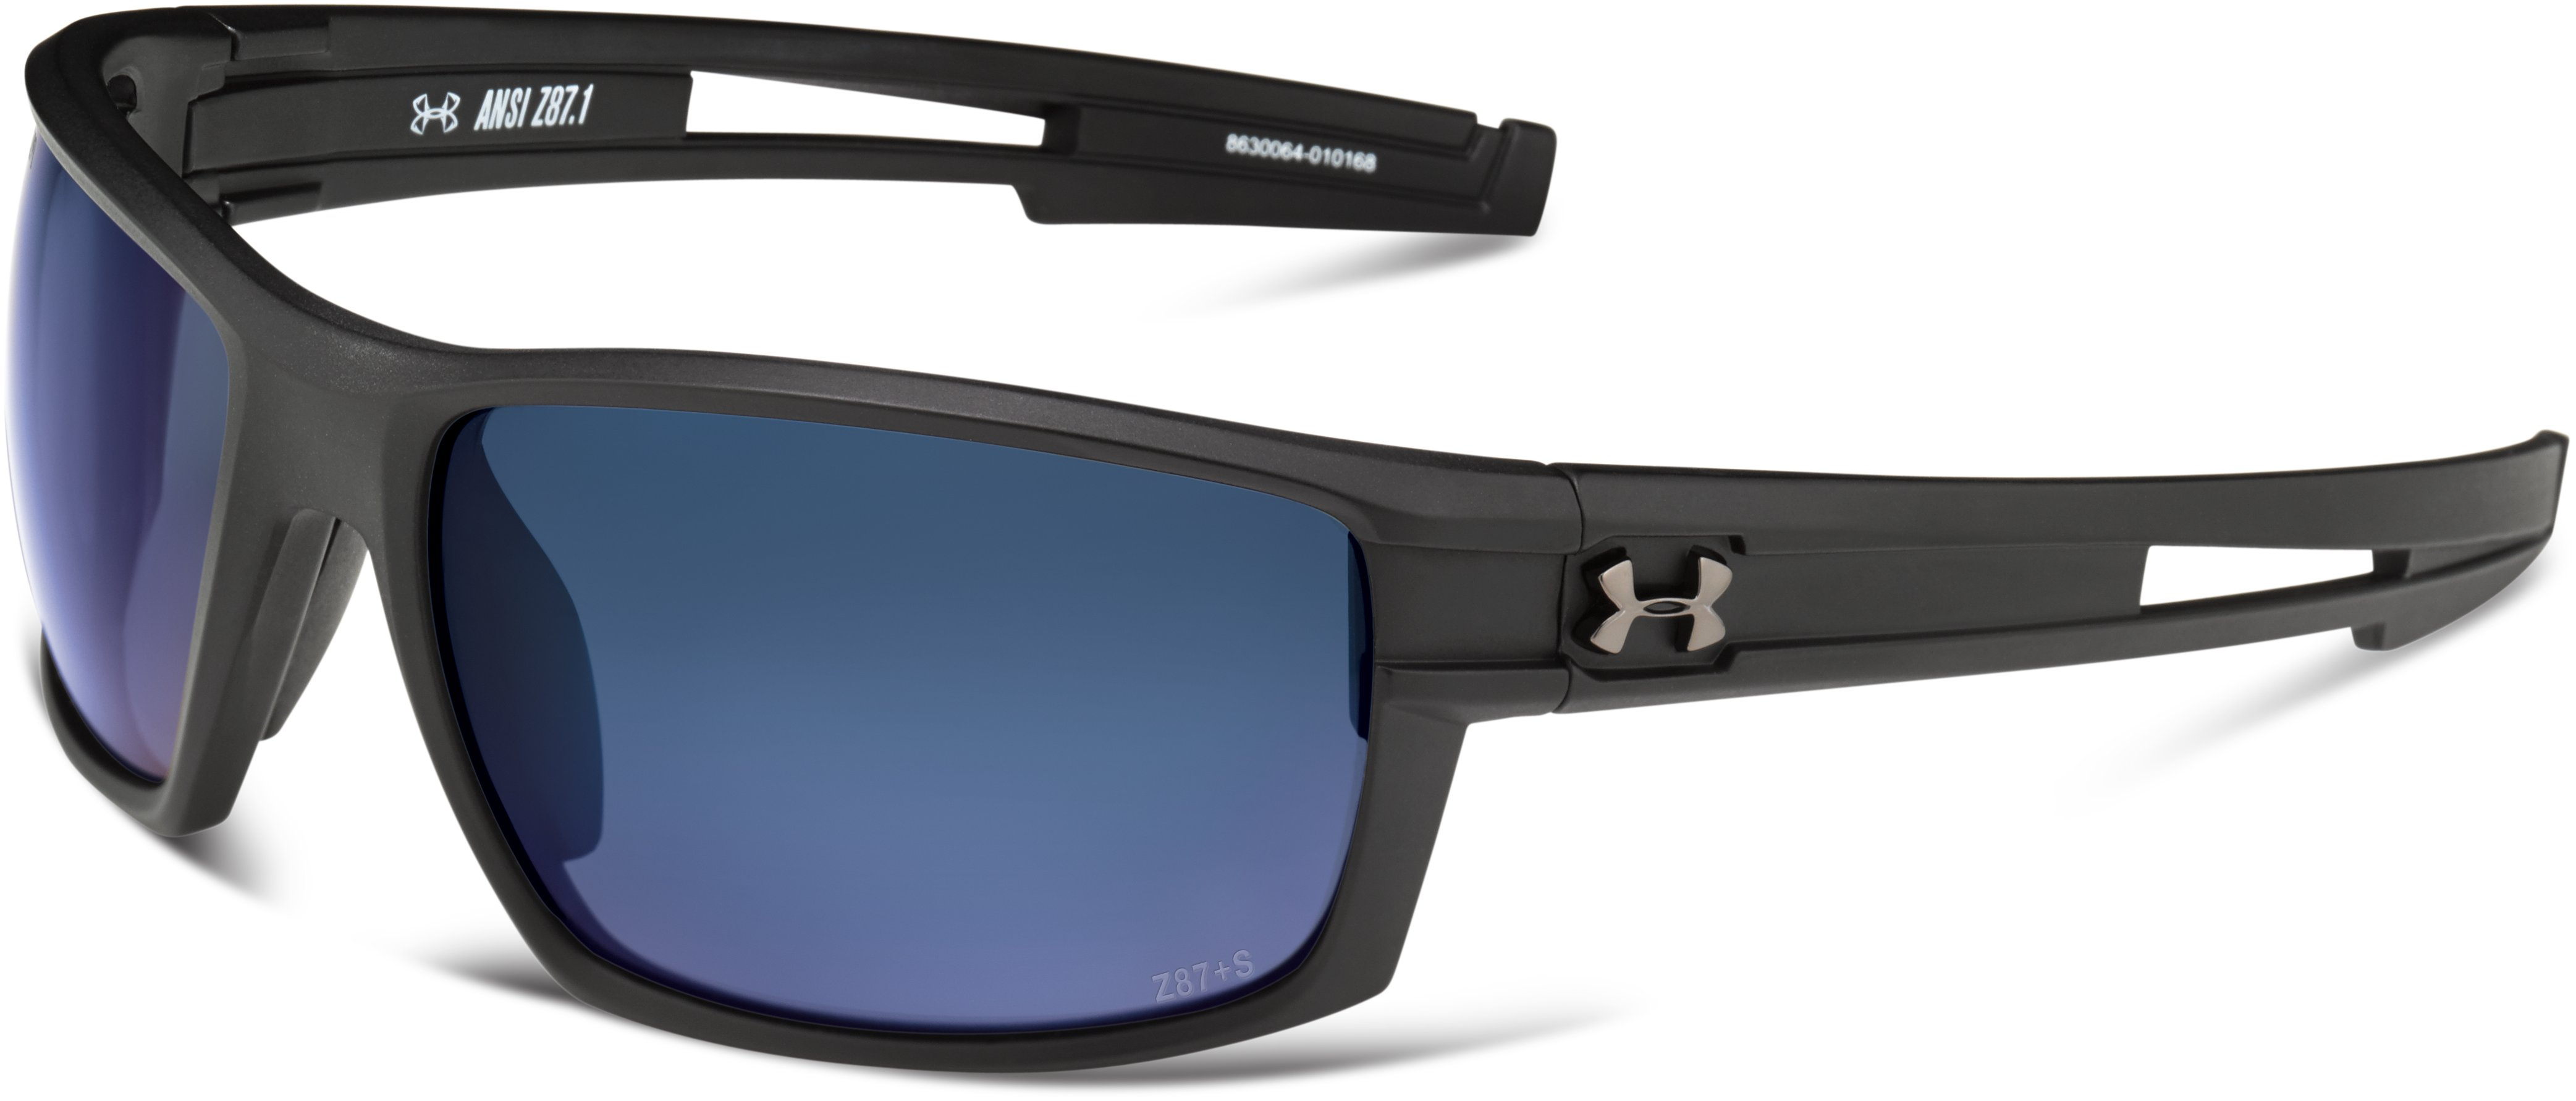 UA Captain Storm Polarized Sunglasses, Satin Black